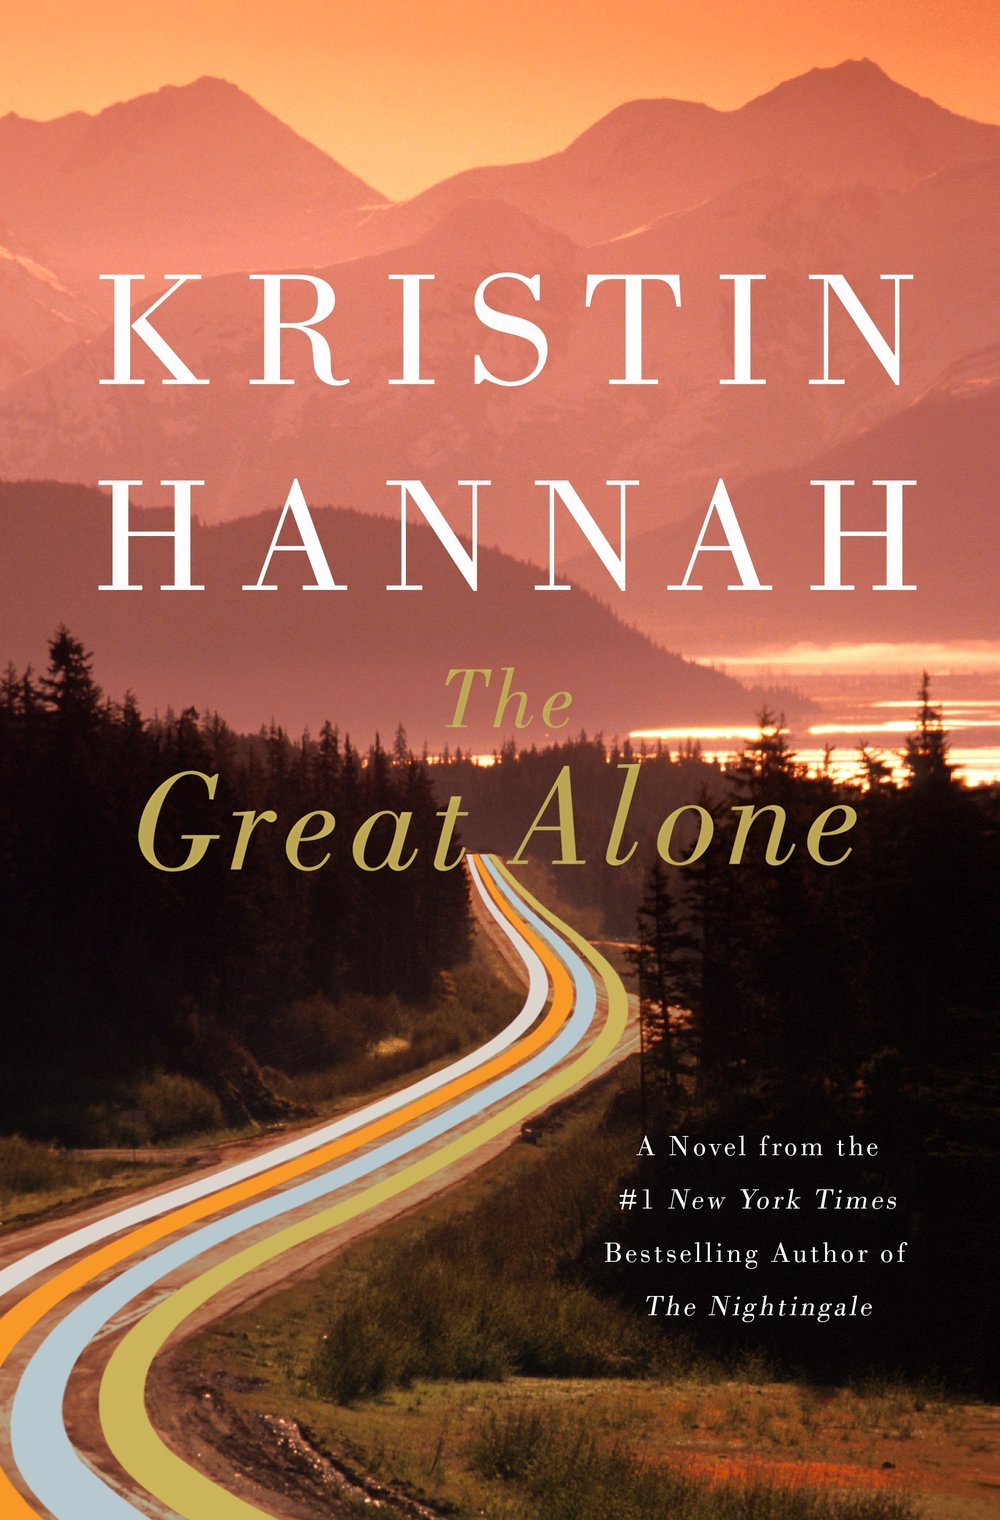 ALSO BY KRISTIN HANNAH:  The Nightingale, Firefly Lane, Winter Garden